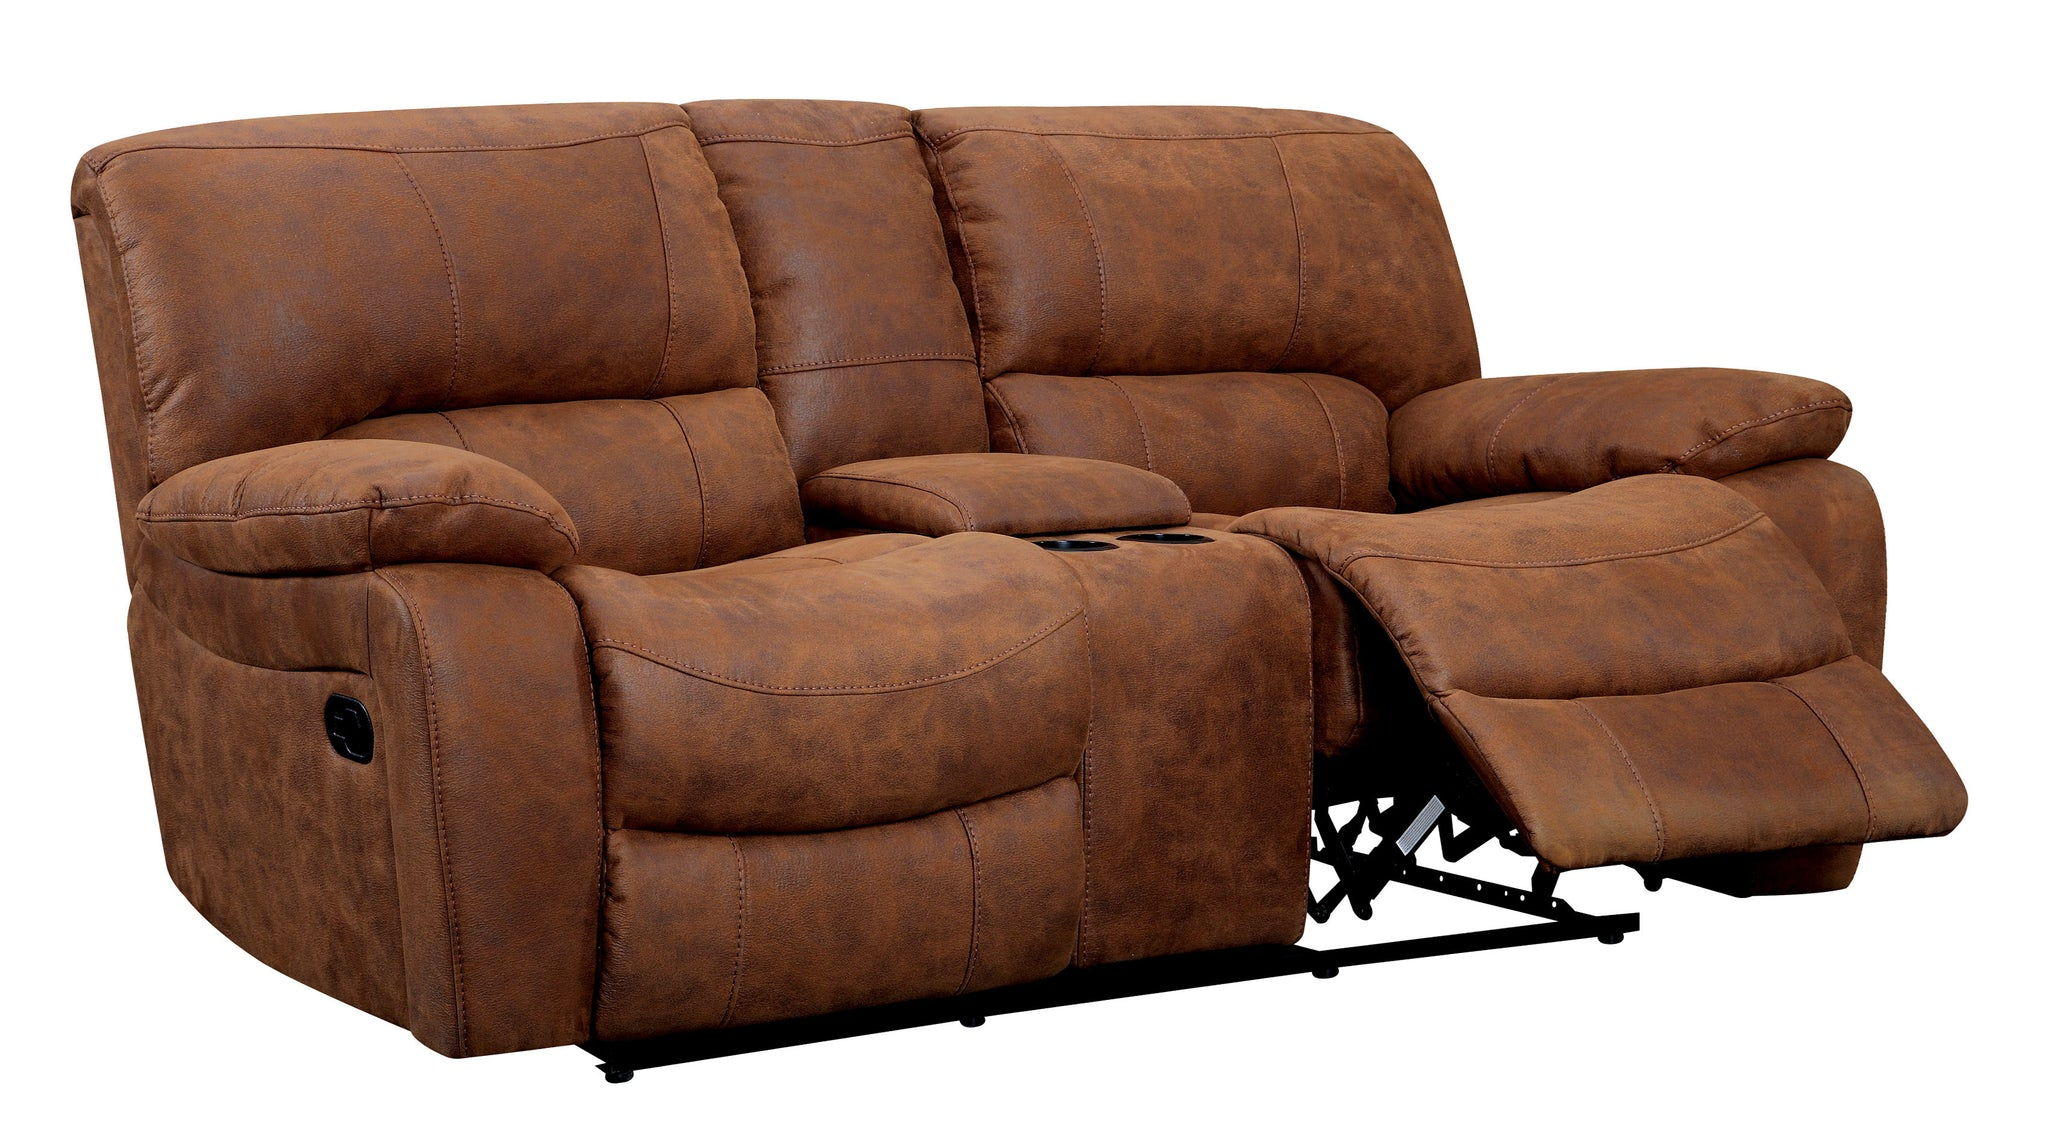 Mandalina Transitional Leatherette Loveseat Recliner, Brown